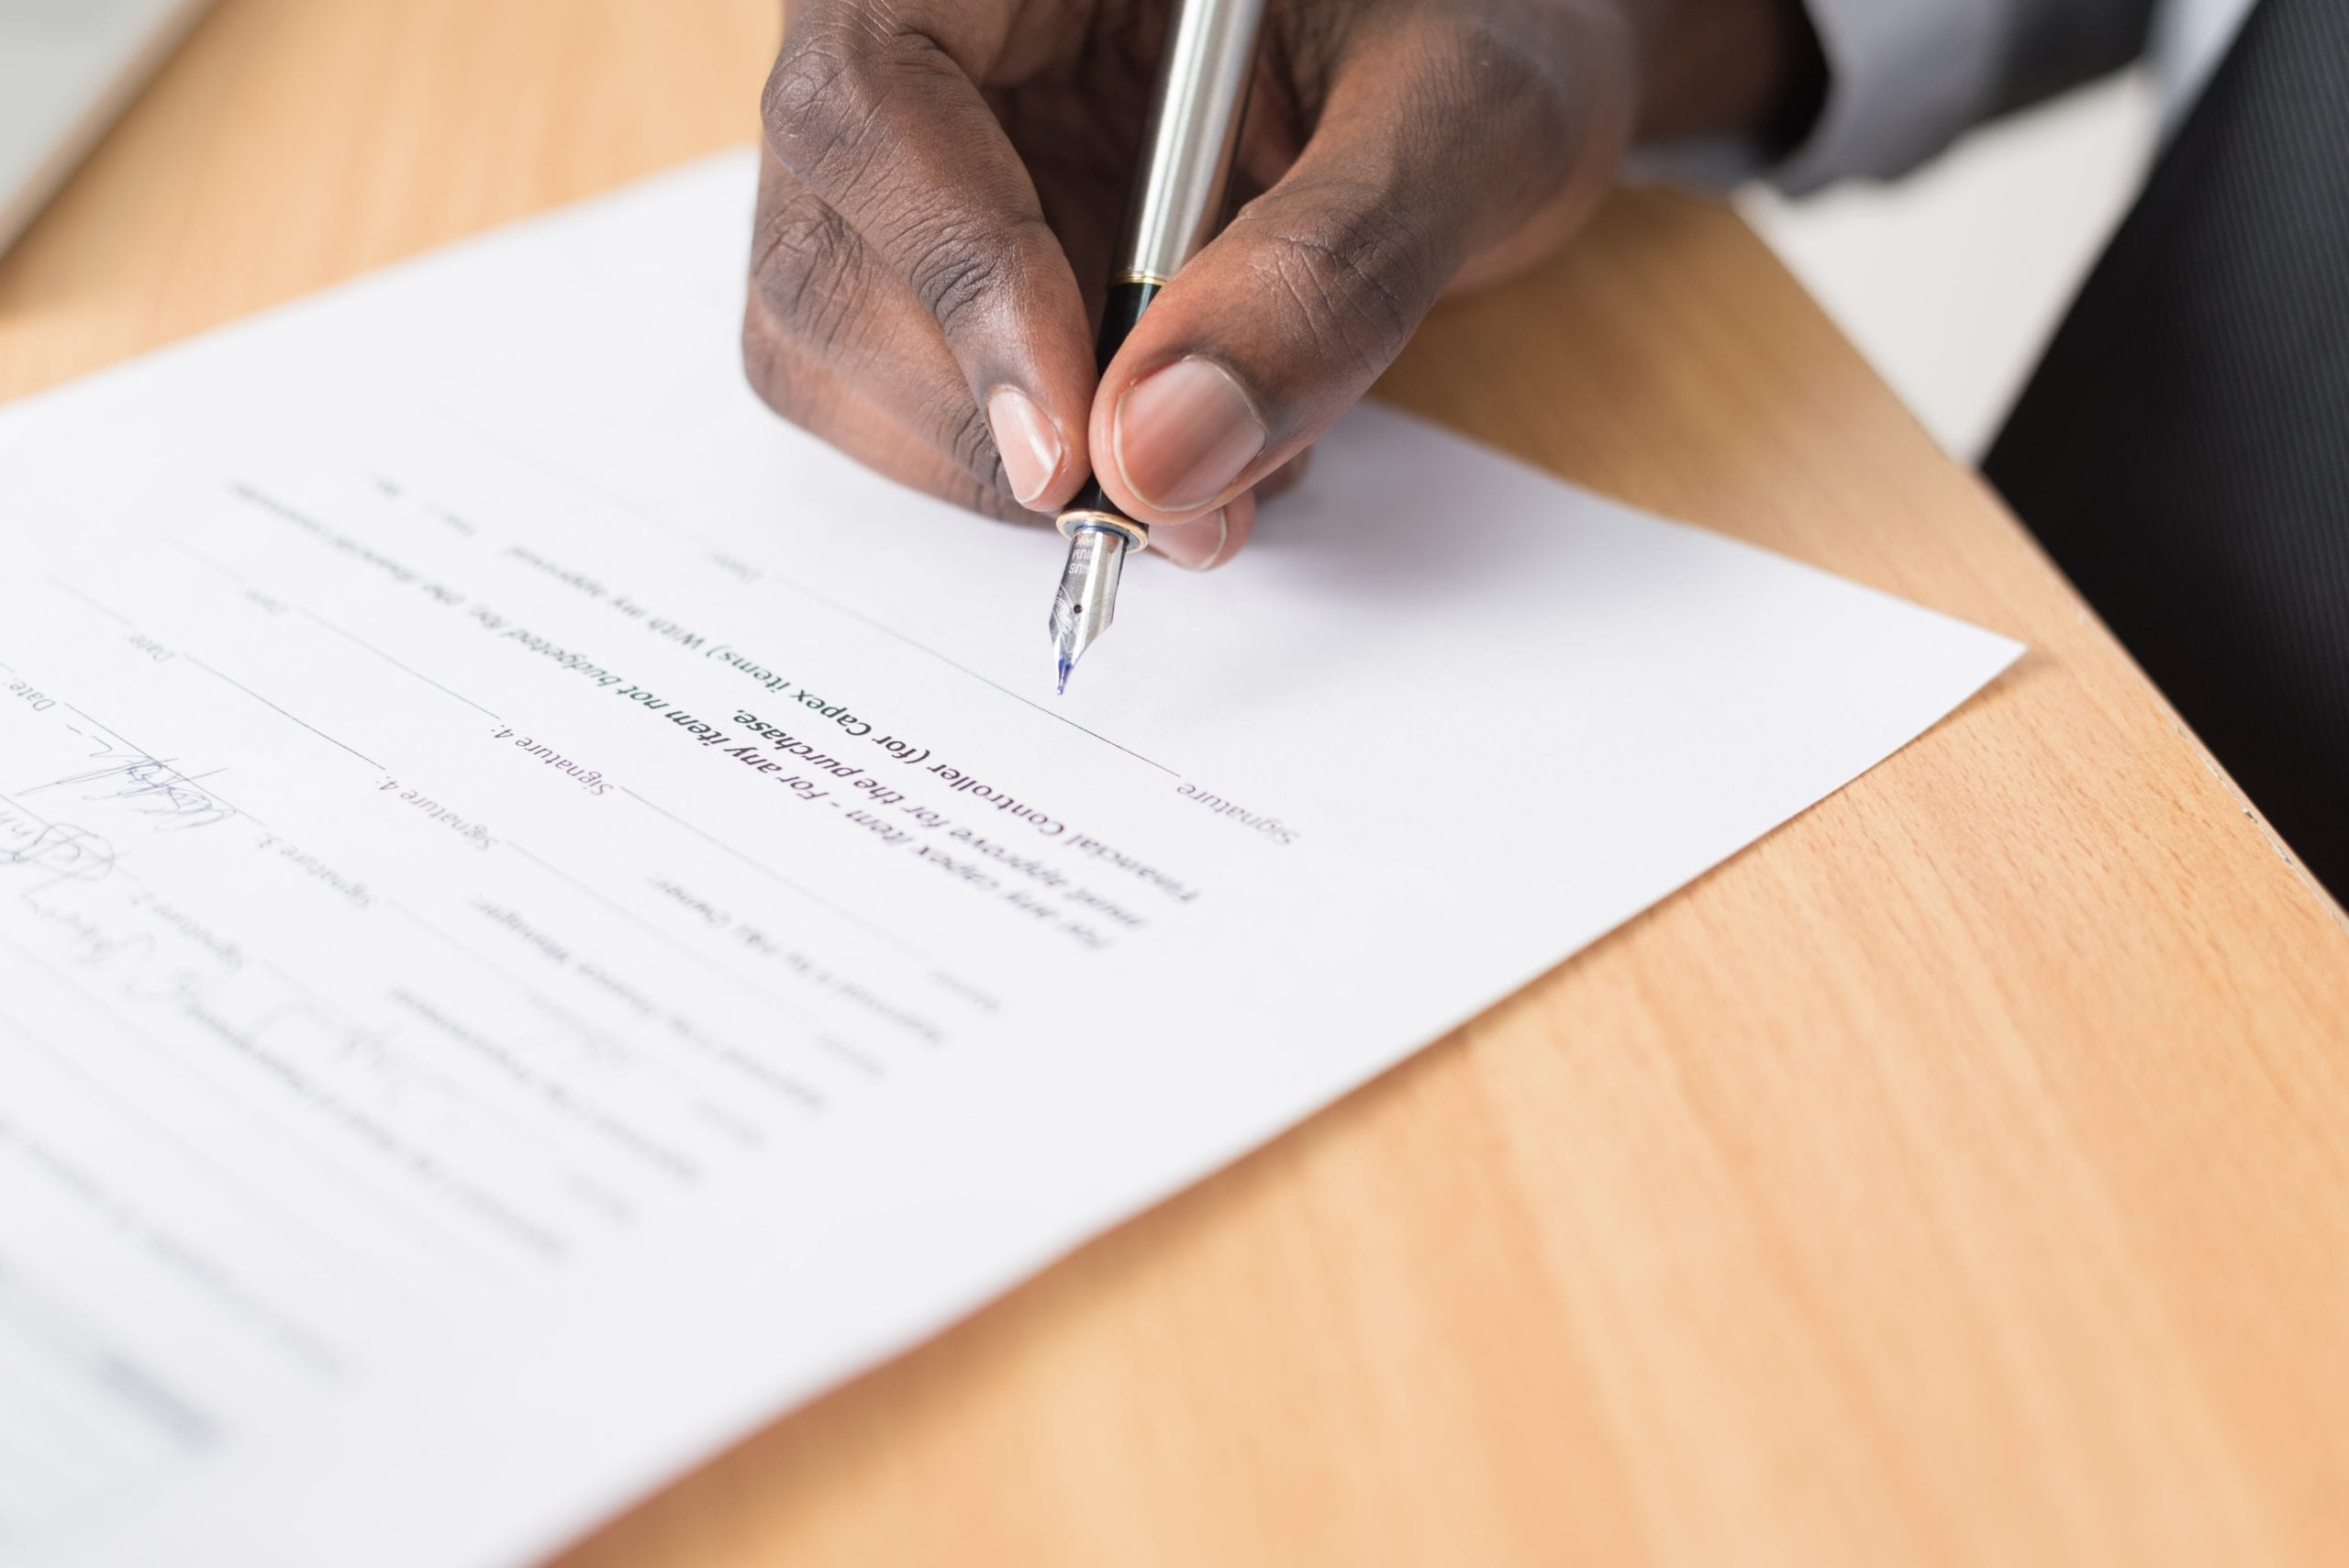 hand holding a pen and cosigning a mortgage document